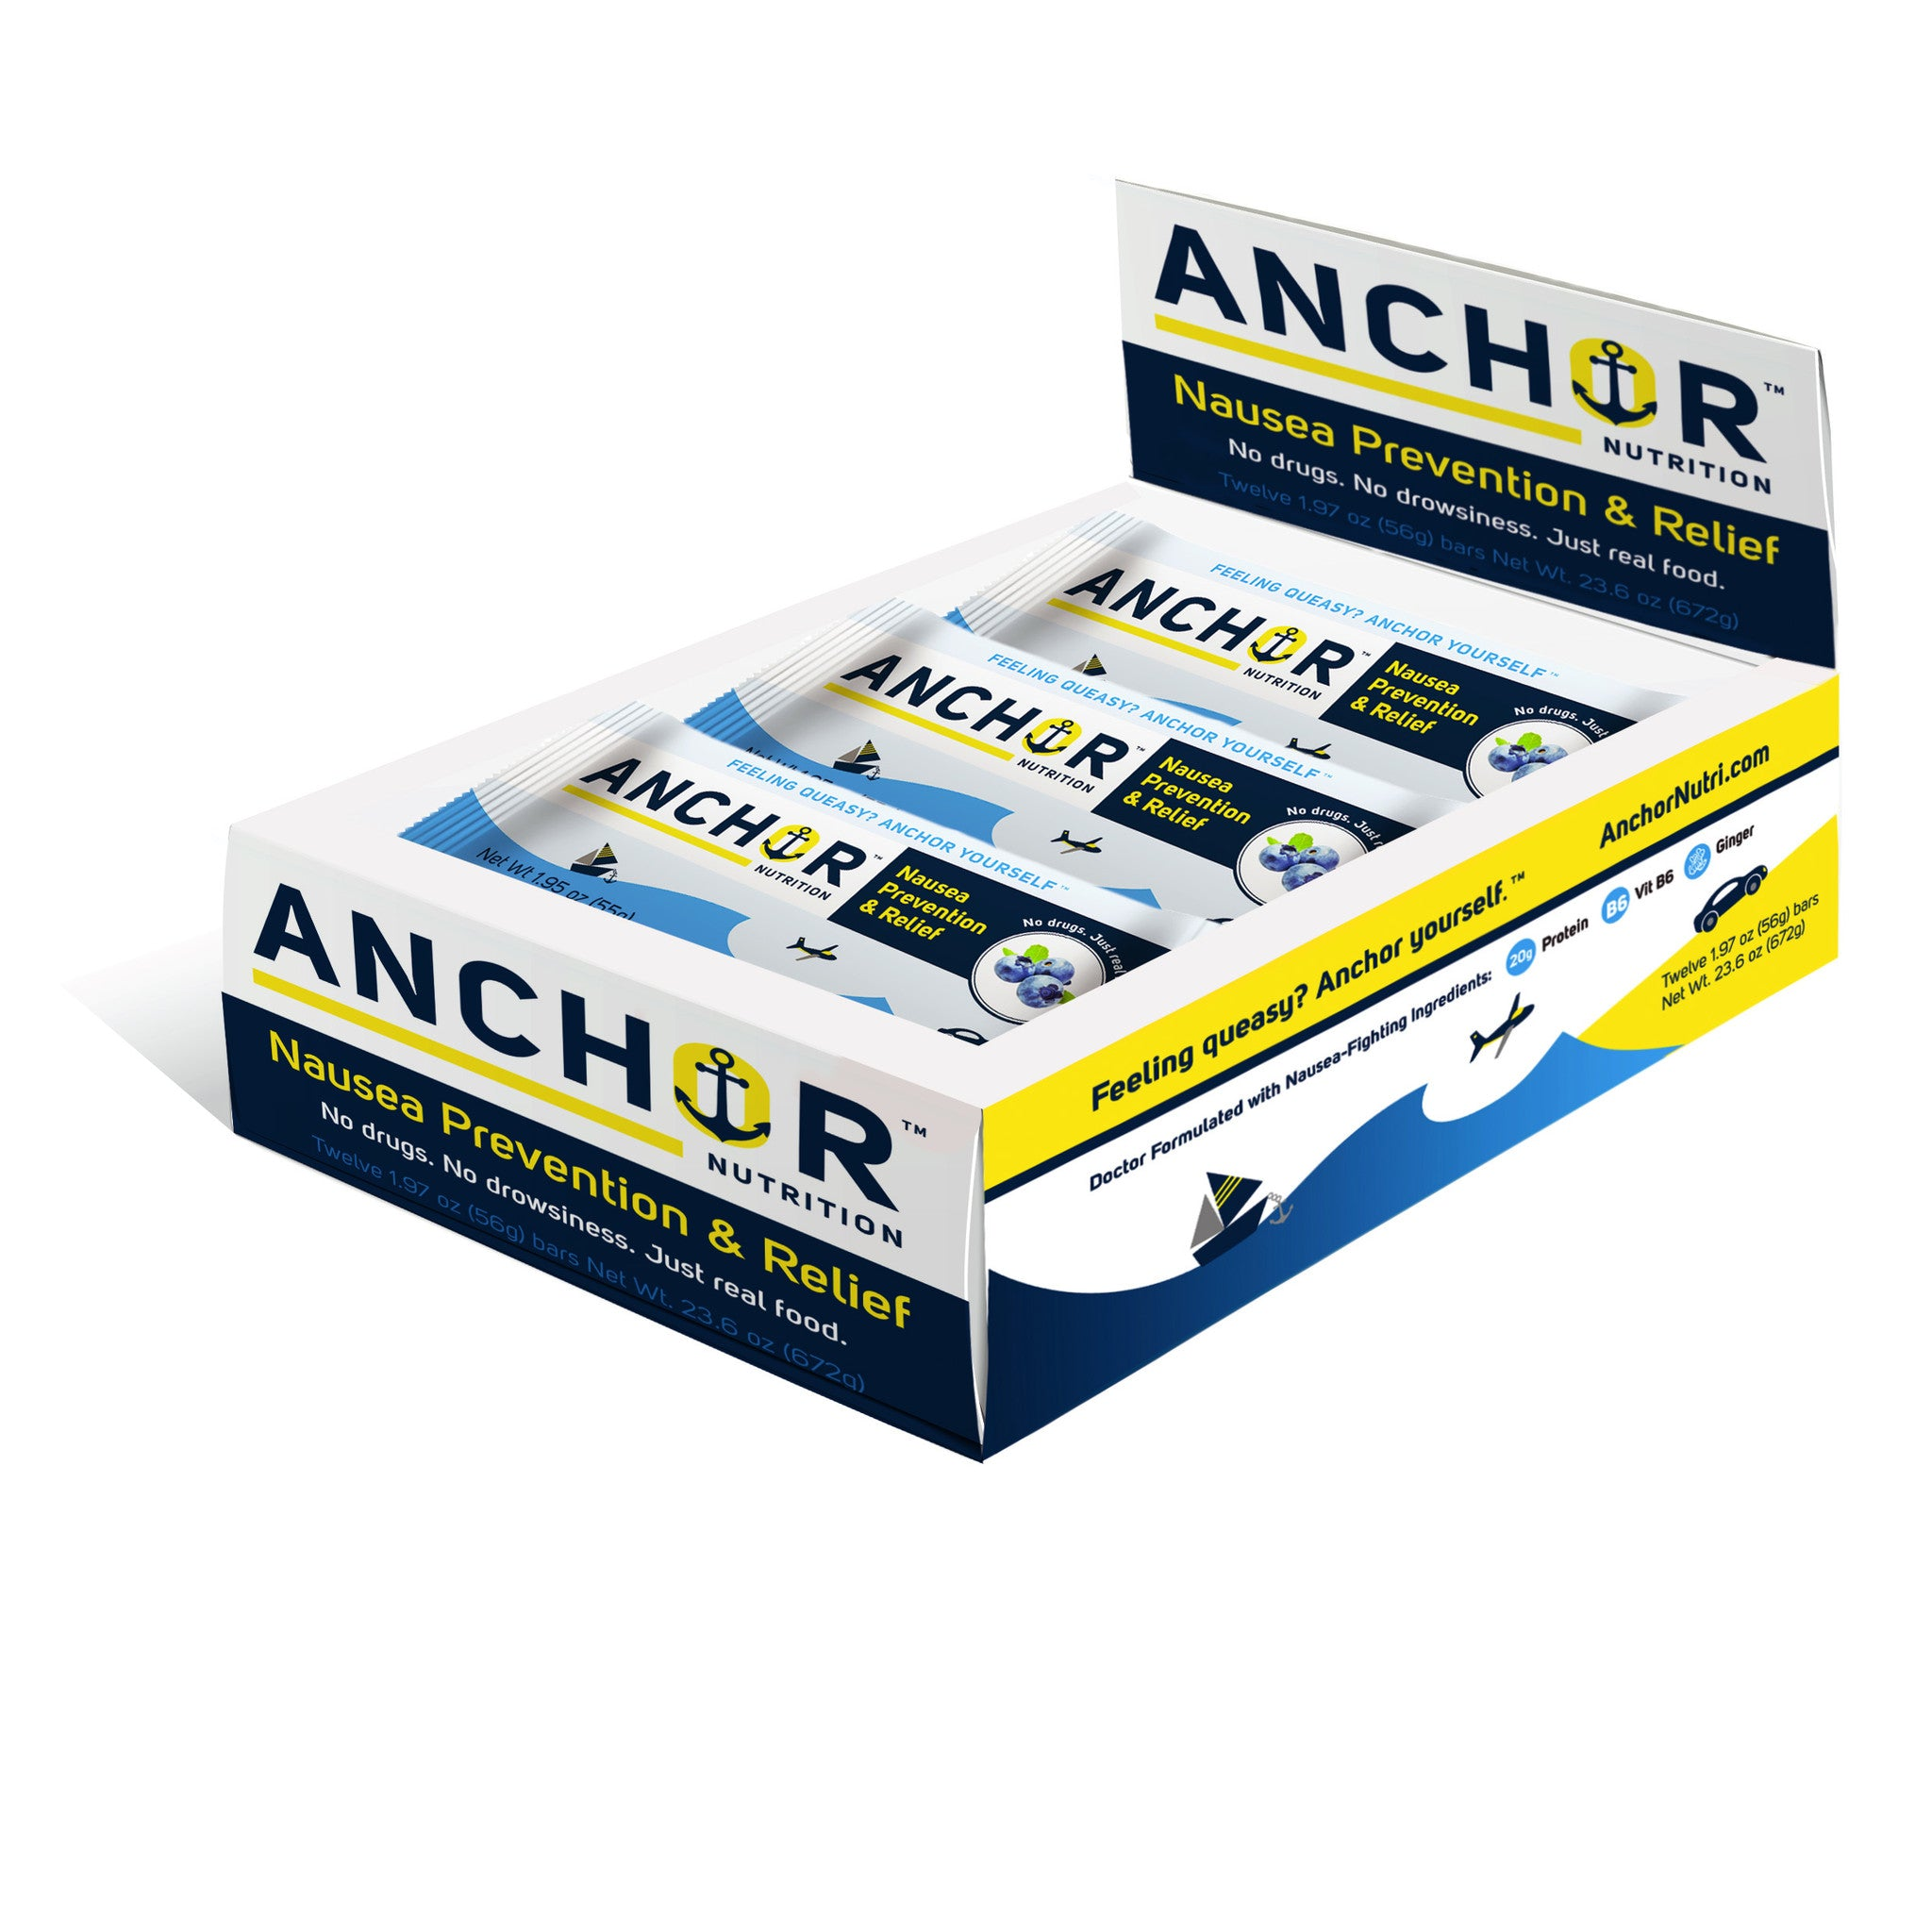 Anchor Nutrition Bar™ - Nausea-Relief Snack (Box of 12 Bars)